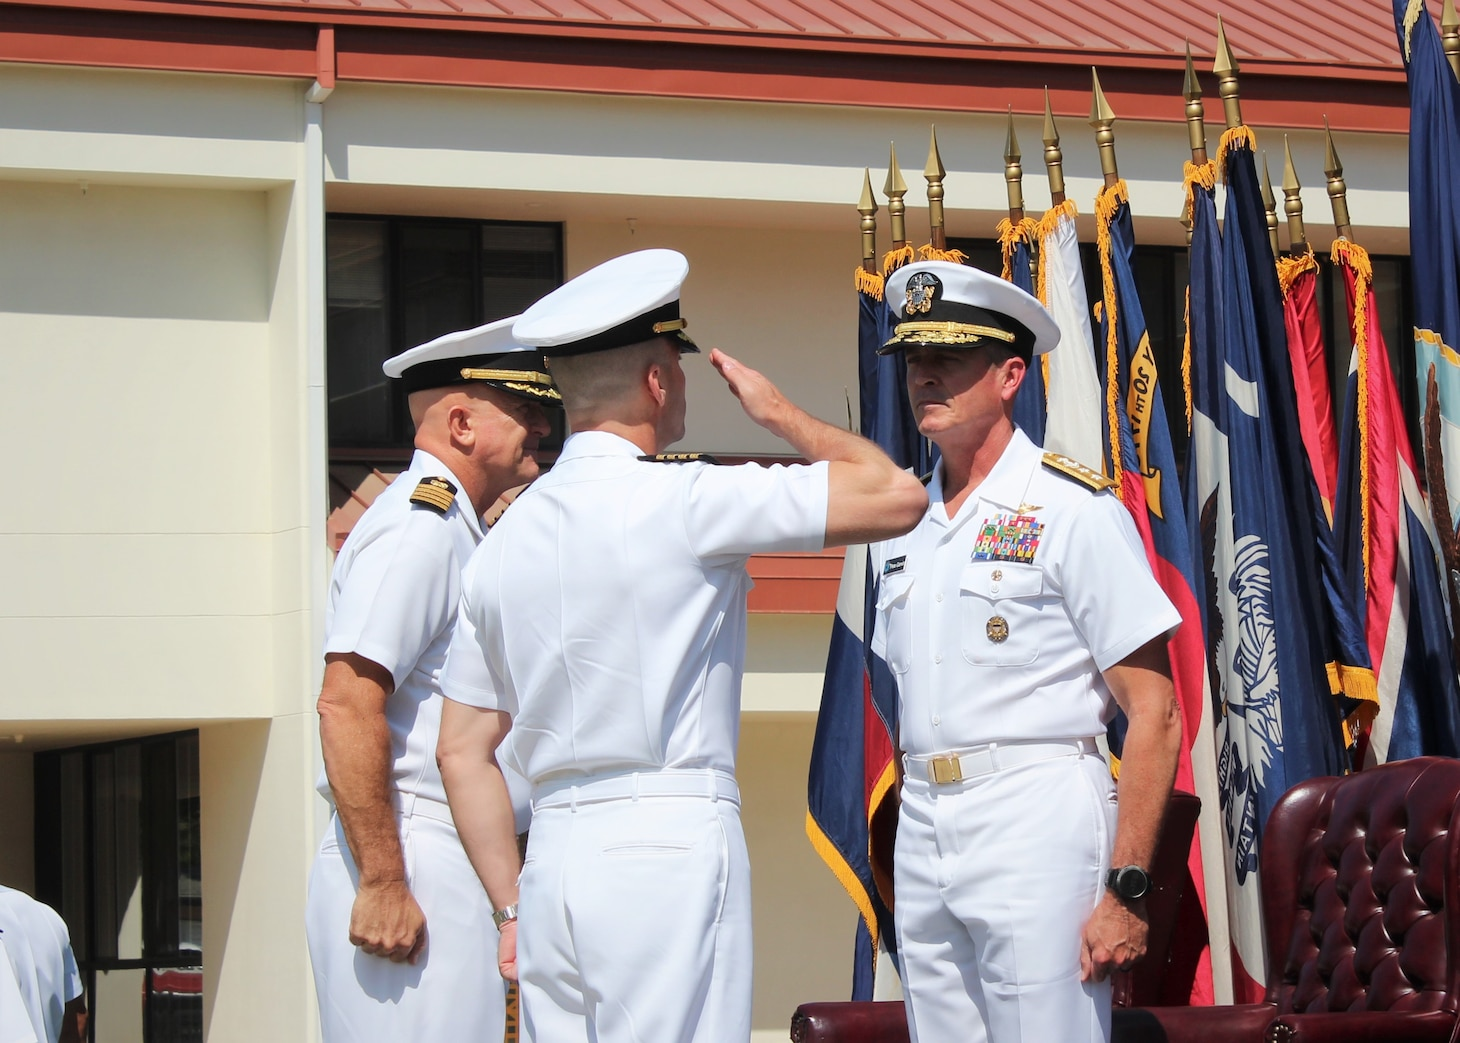 PORT HUENEME, Calif. (Aug. 26, 2021) Capt. Peter Maculan, left, reports assumption of command to Rear Adm. Peter Garvin during the Center for Seabees and Facilities Engineering (CSFE) change of command Aug. 26. CSFE trains civil engineering corps officers, enlisted Seabees and environmental professionals. (U.S. Navy photo by Amber Vaglica)